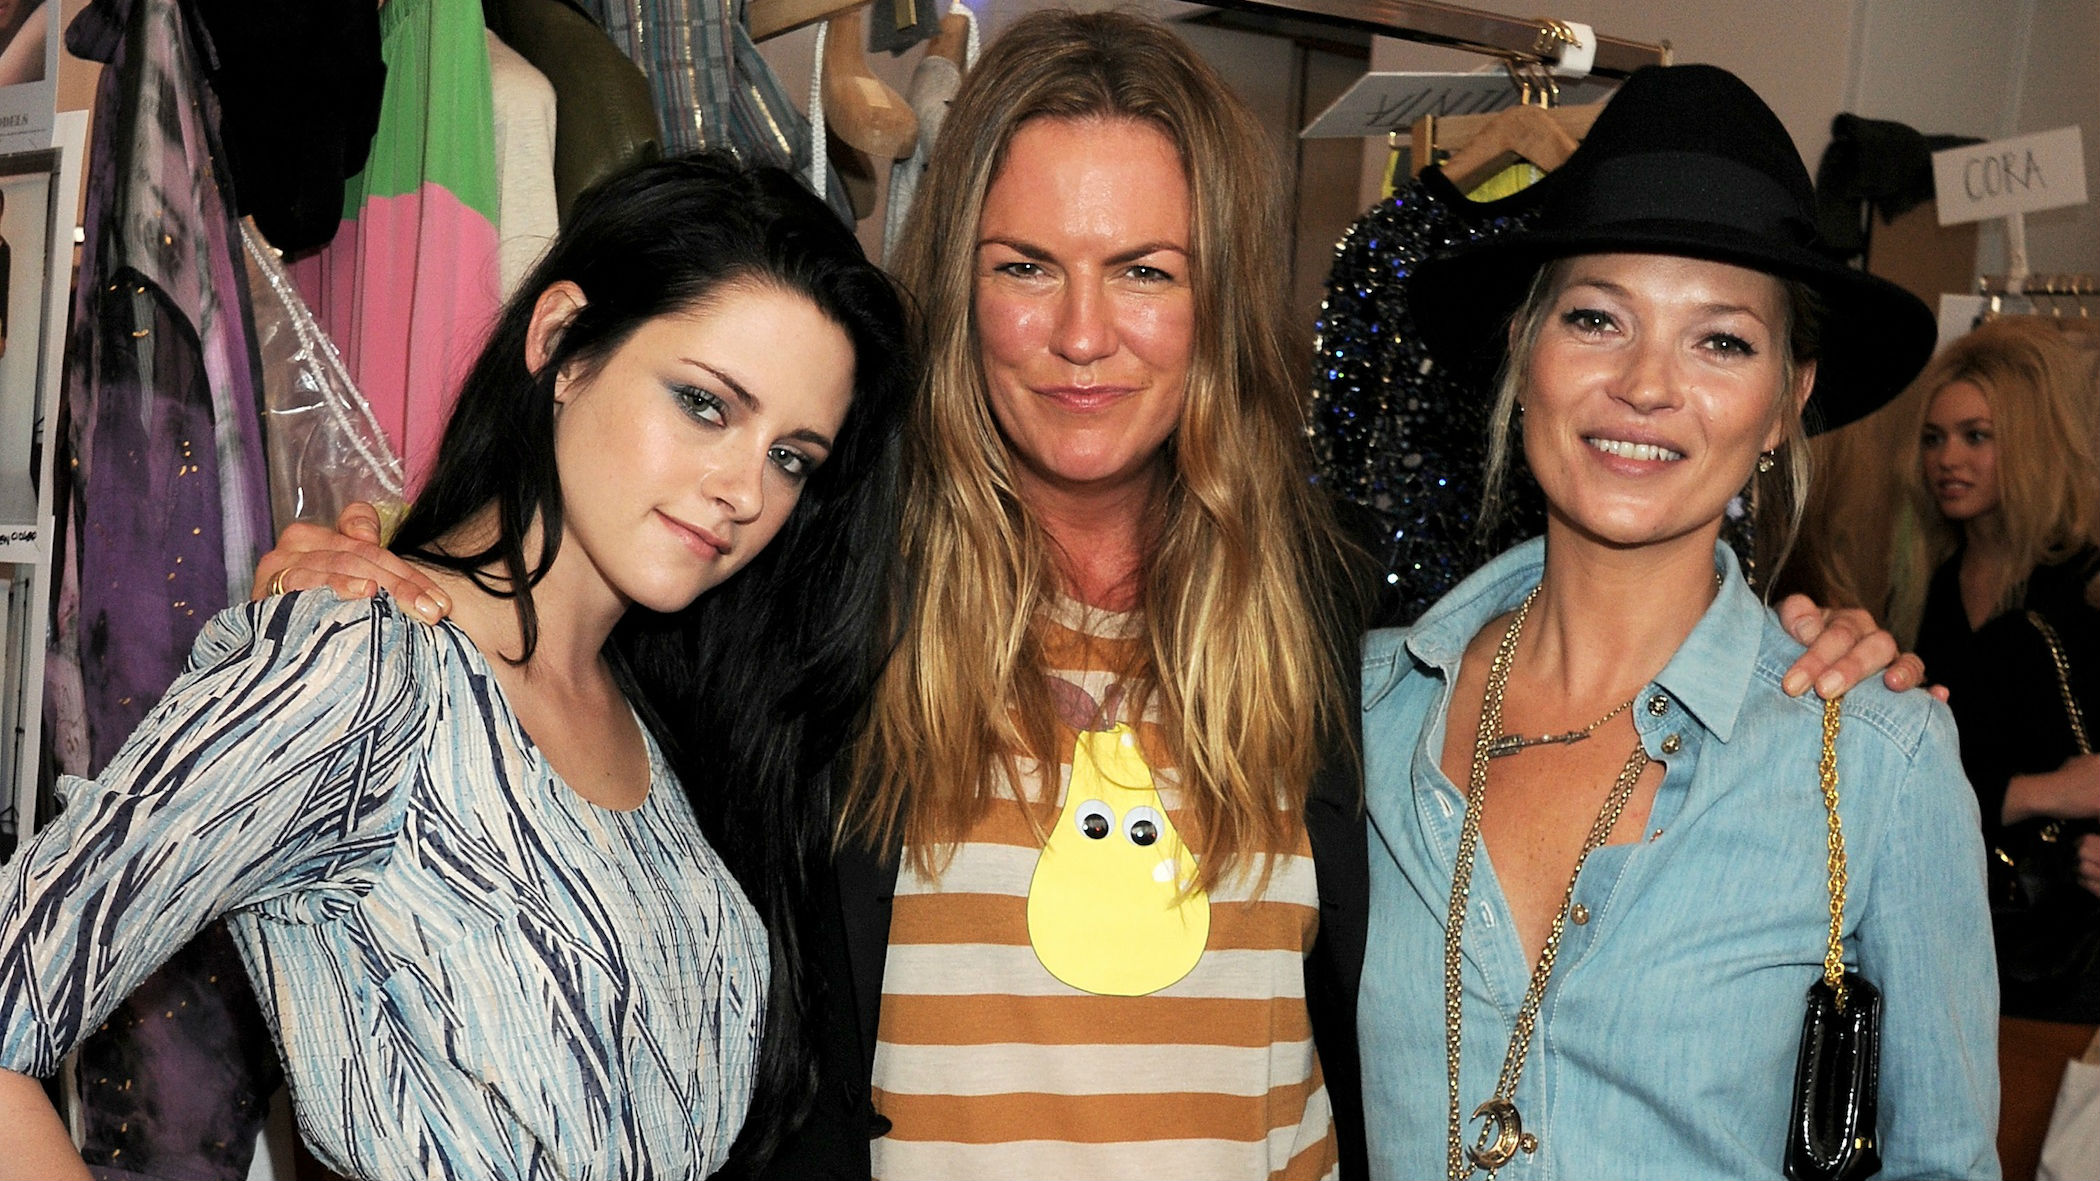 Emma Hill (middle) backstage at a Mulberry runway show with Kristen Stewart and Kate Moss (right).